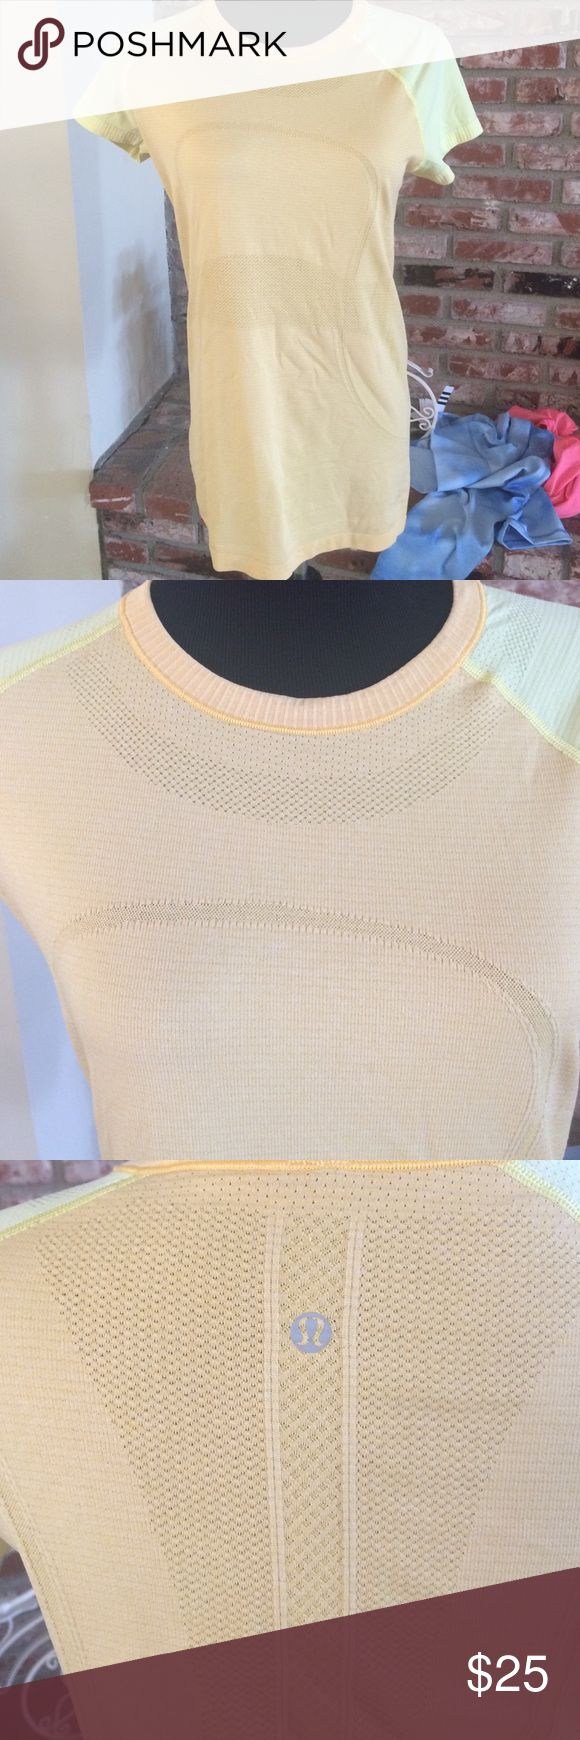 Lululemon run swiftly orange and yellow shirt 10 Very good used condition. Cute color combo lululemon athletica Tops Tees - Short Sleeve